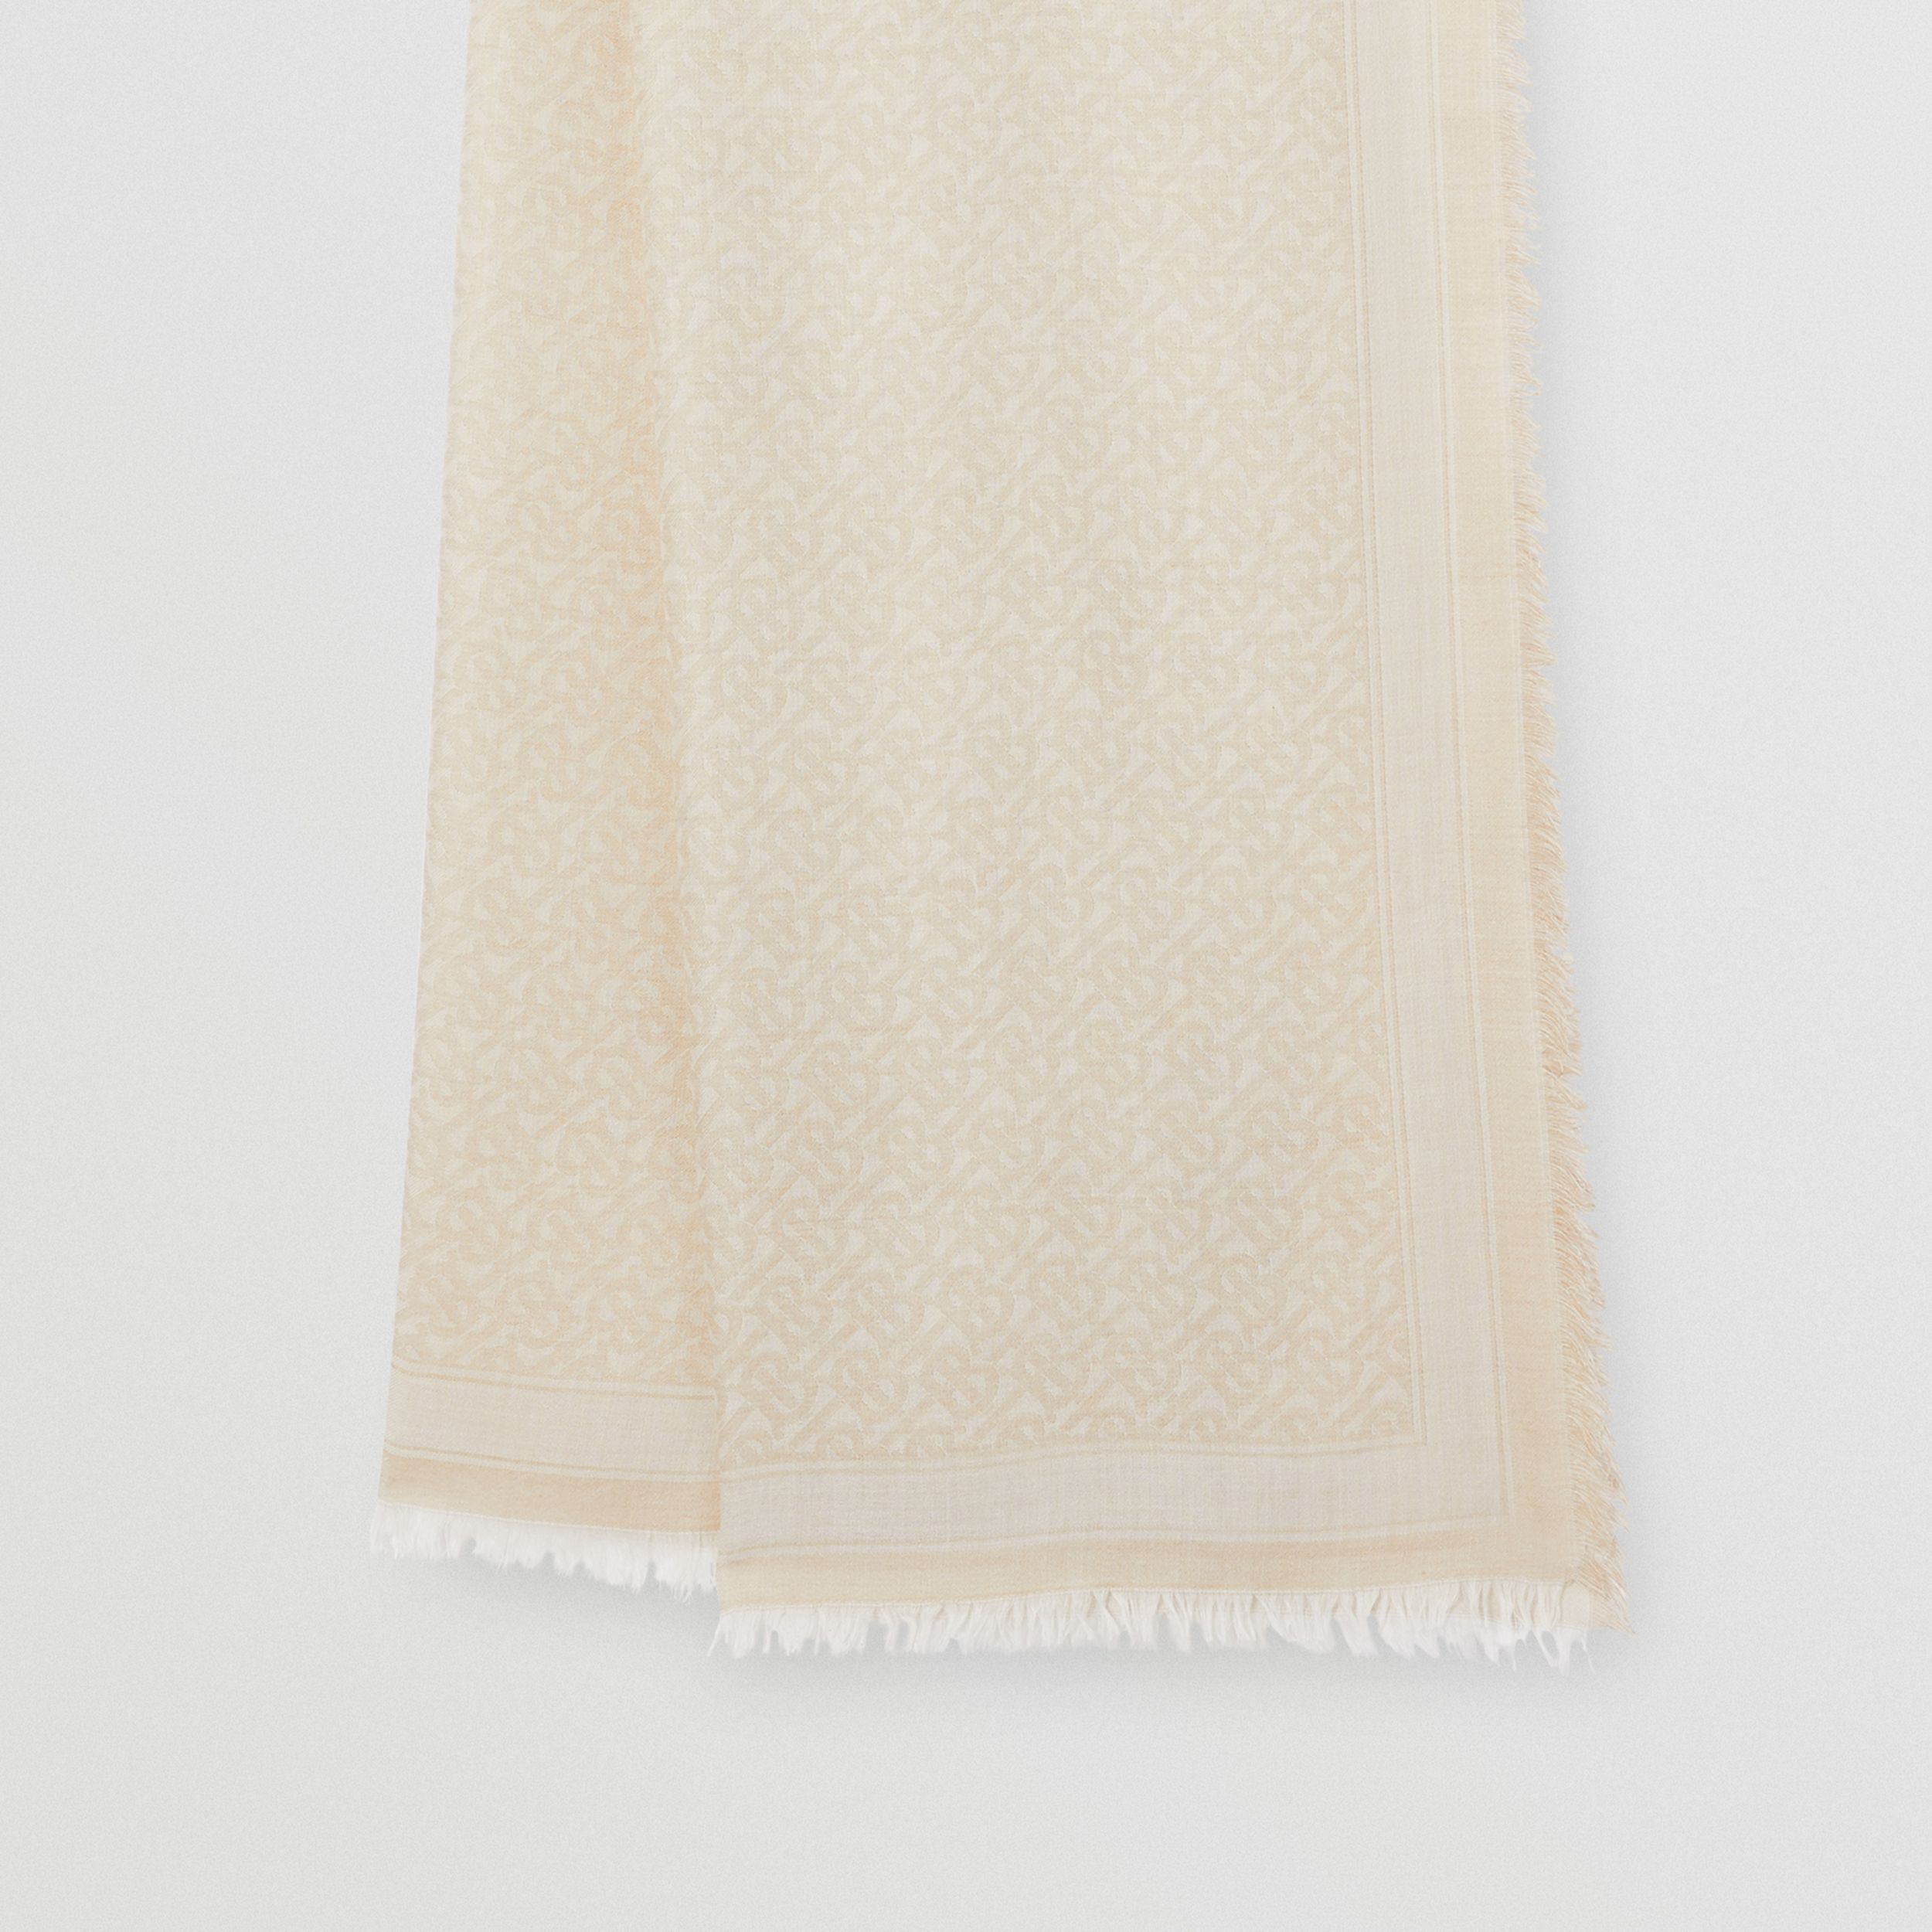 Monogram Wool Silk Jacquard Scarf in Pale Archive Beige | Burberry - 4